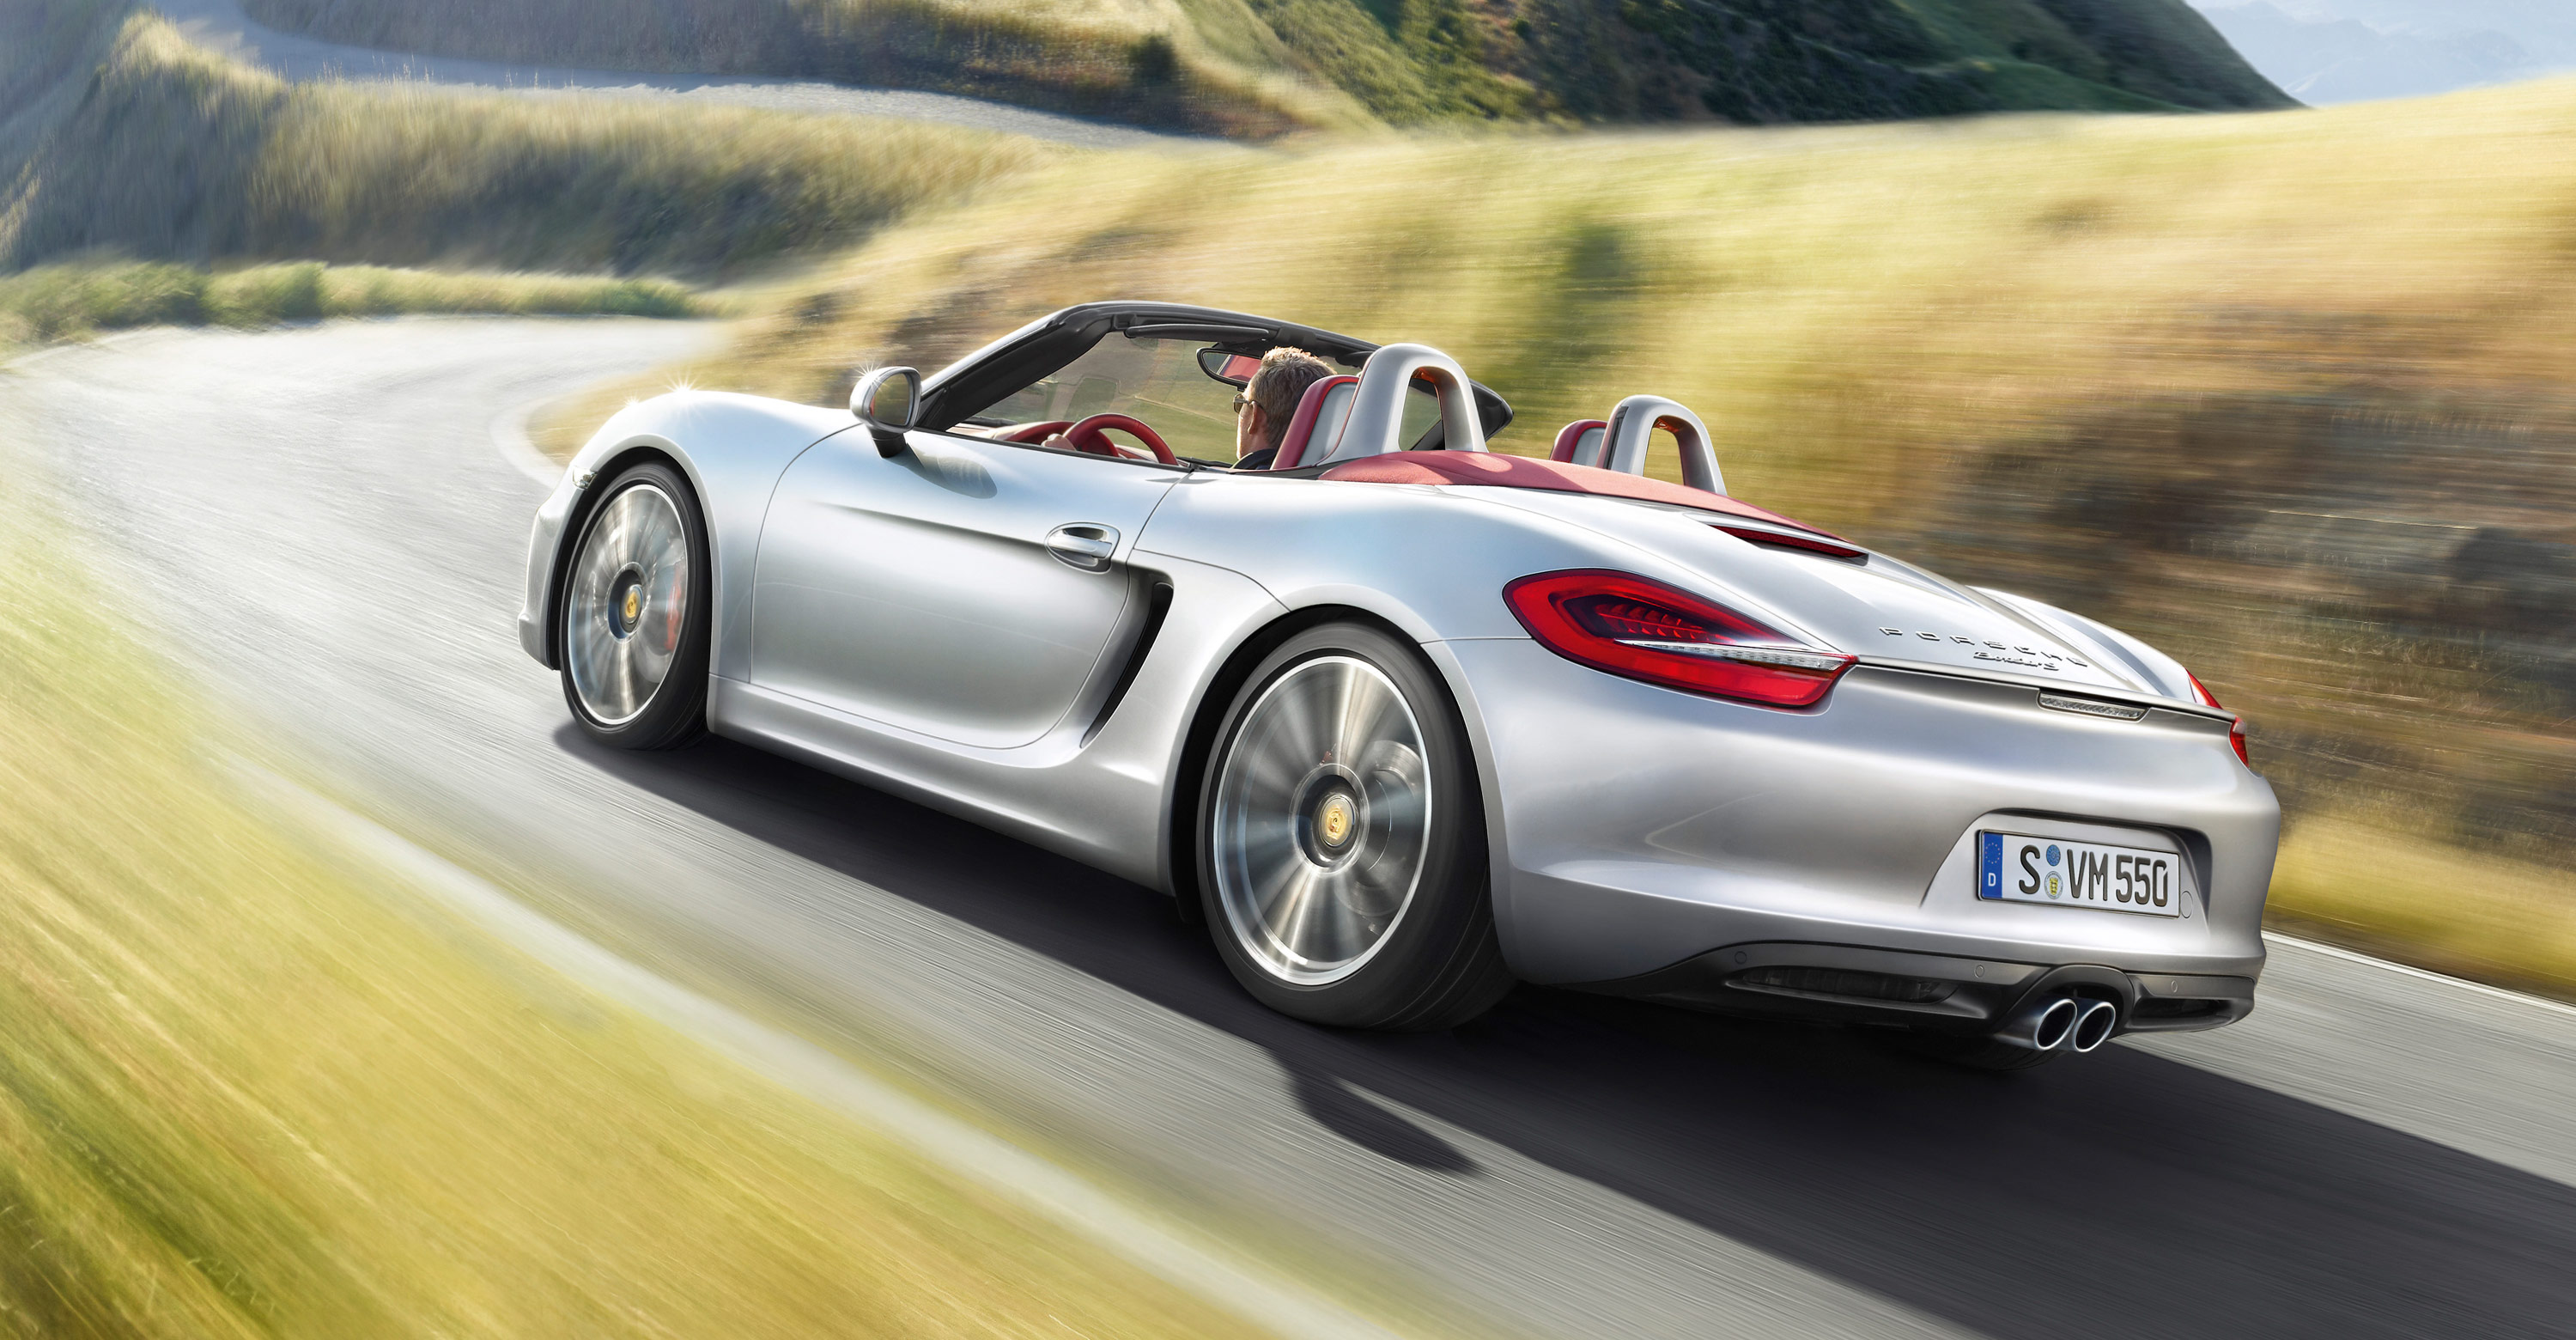 2012 Porsche Boxster S - Rear angle side view